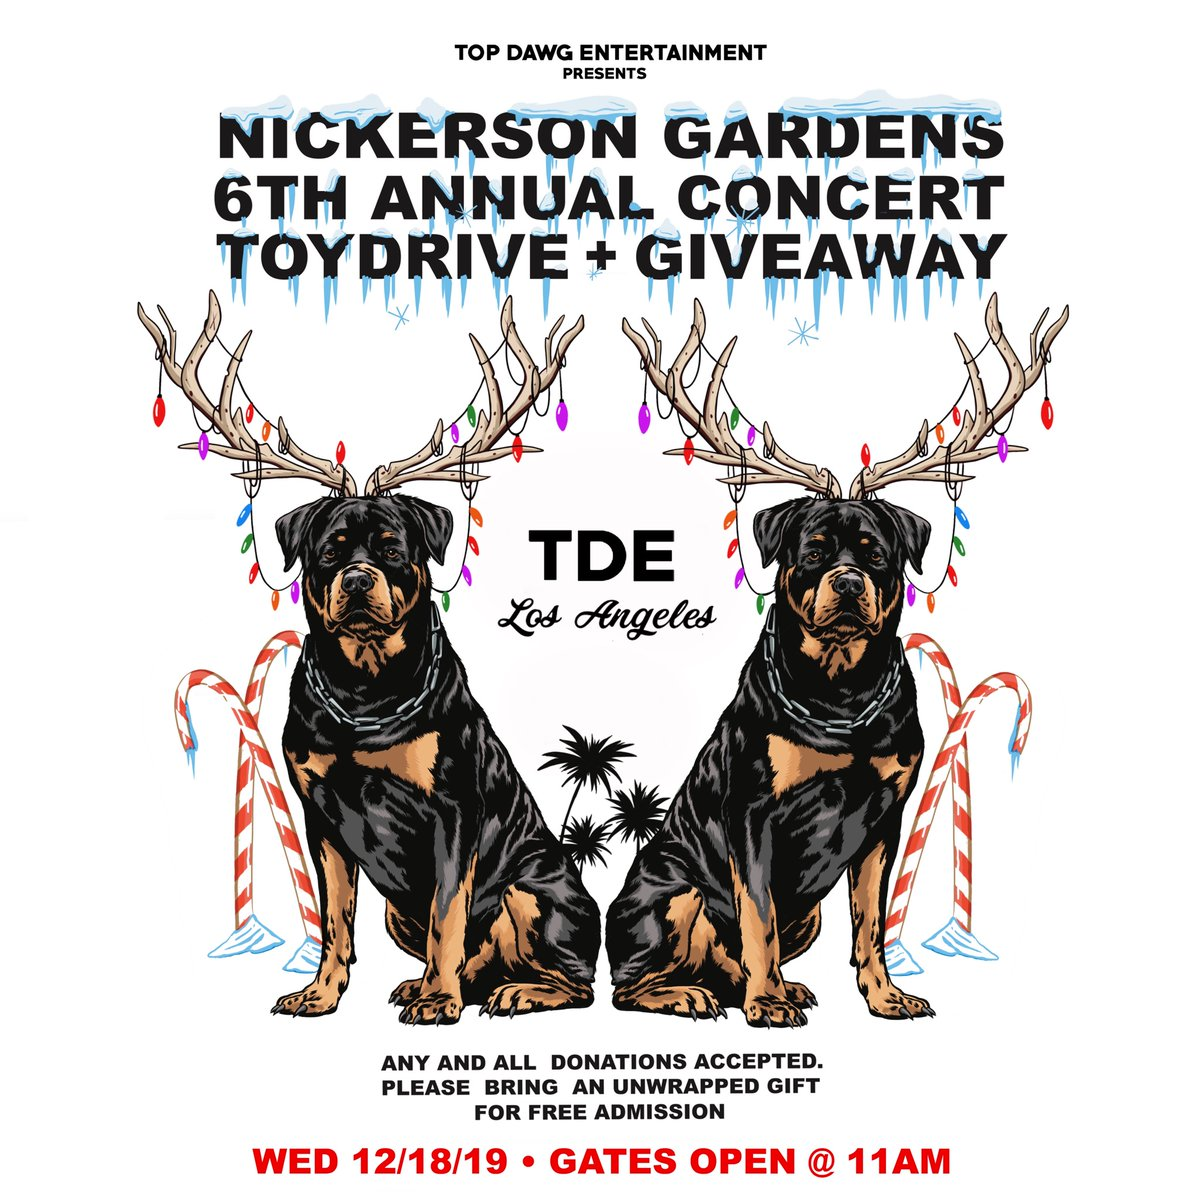 🎅🏾🎄2DAY!!! 6TH ANNUAL TDE XMAS🎄🎅🏾  WED 12/18 • GATES OPEN @ 11AM  BRING AN UNWRAPPED GIFT FOR FREE ADMISSION.🎁🎁🎁 #TDEXMAS19 #TDE